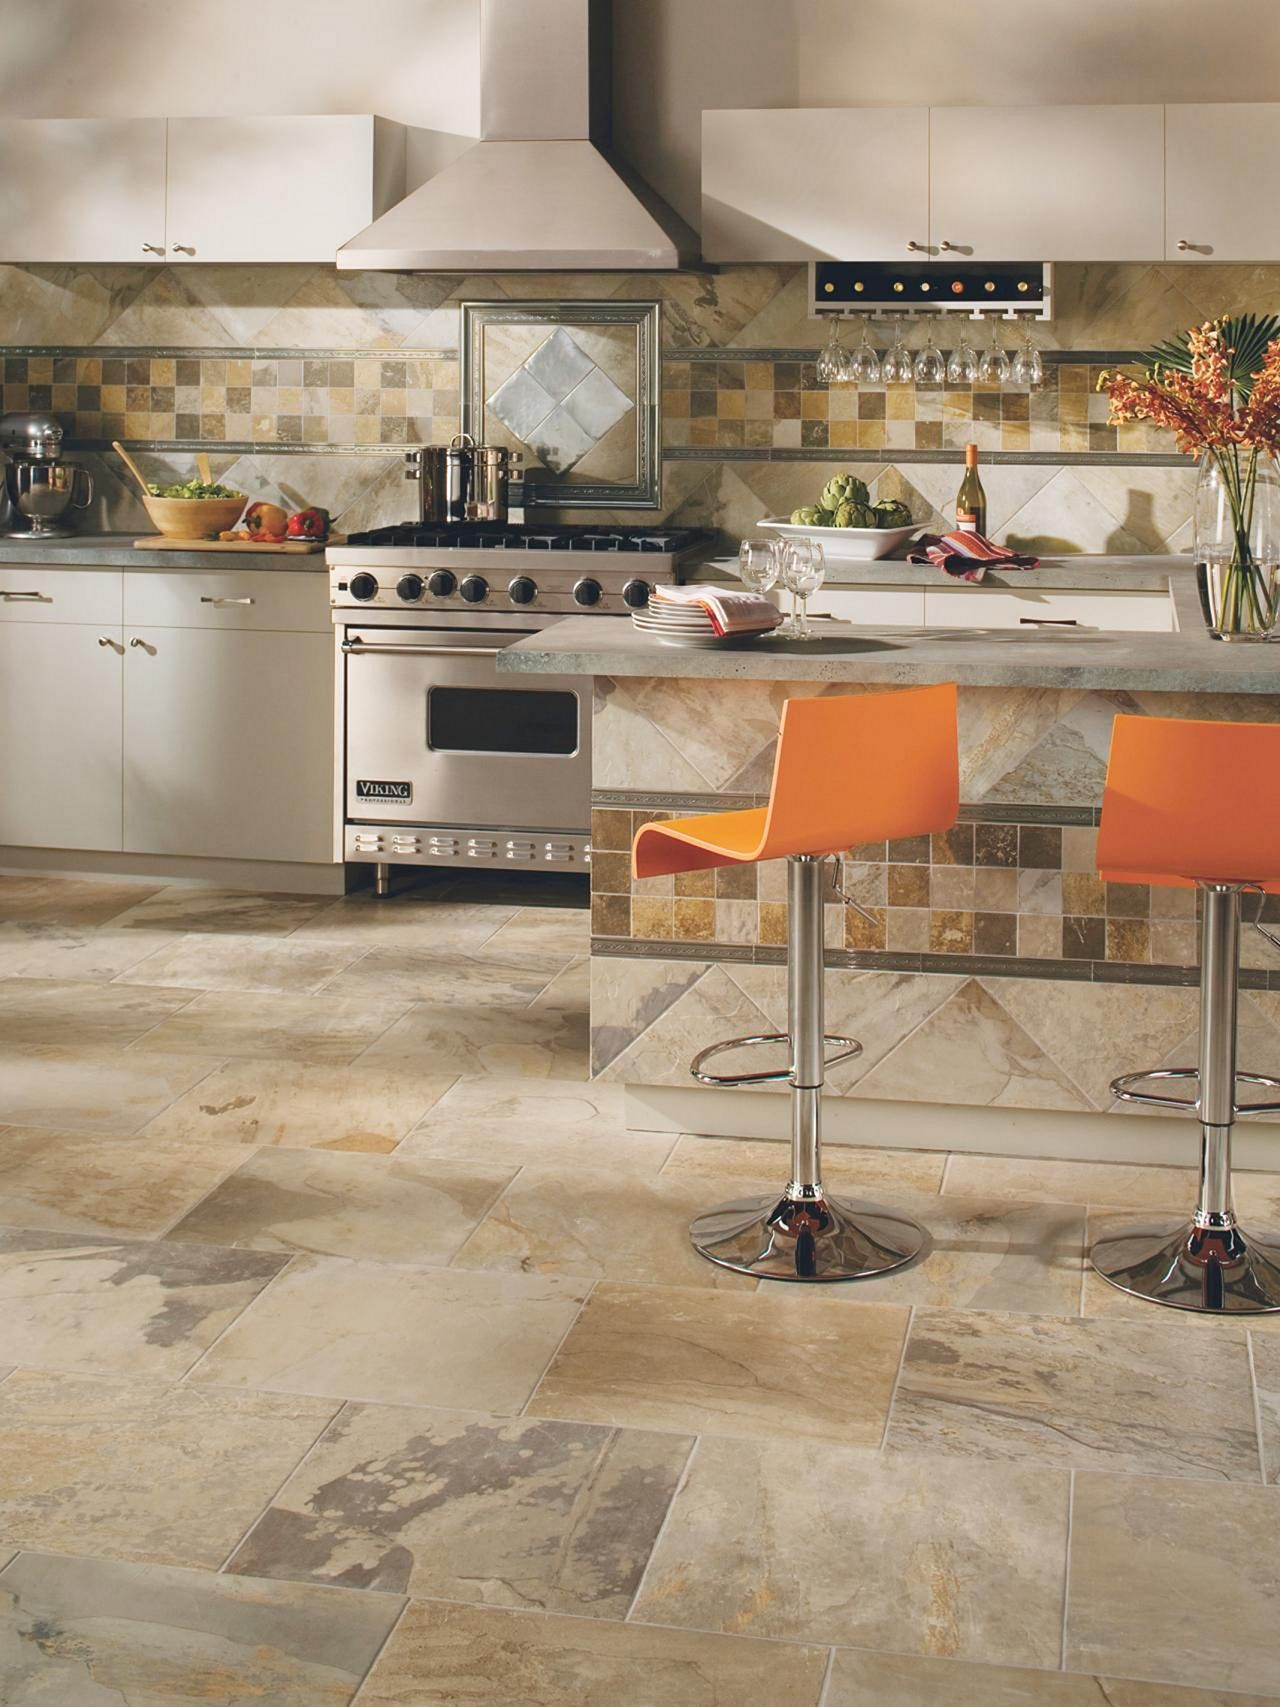 25 incredible kitchen floor design with stone floor ideas kitchen flooring patterned kitchen on kitchen flooring ideas id=54814